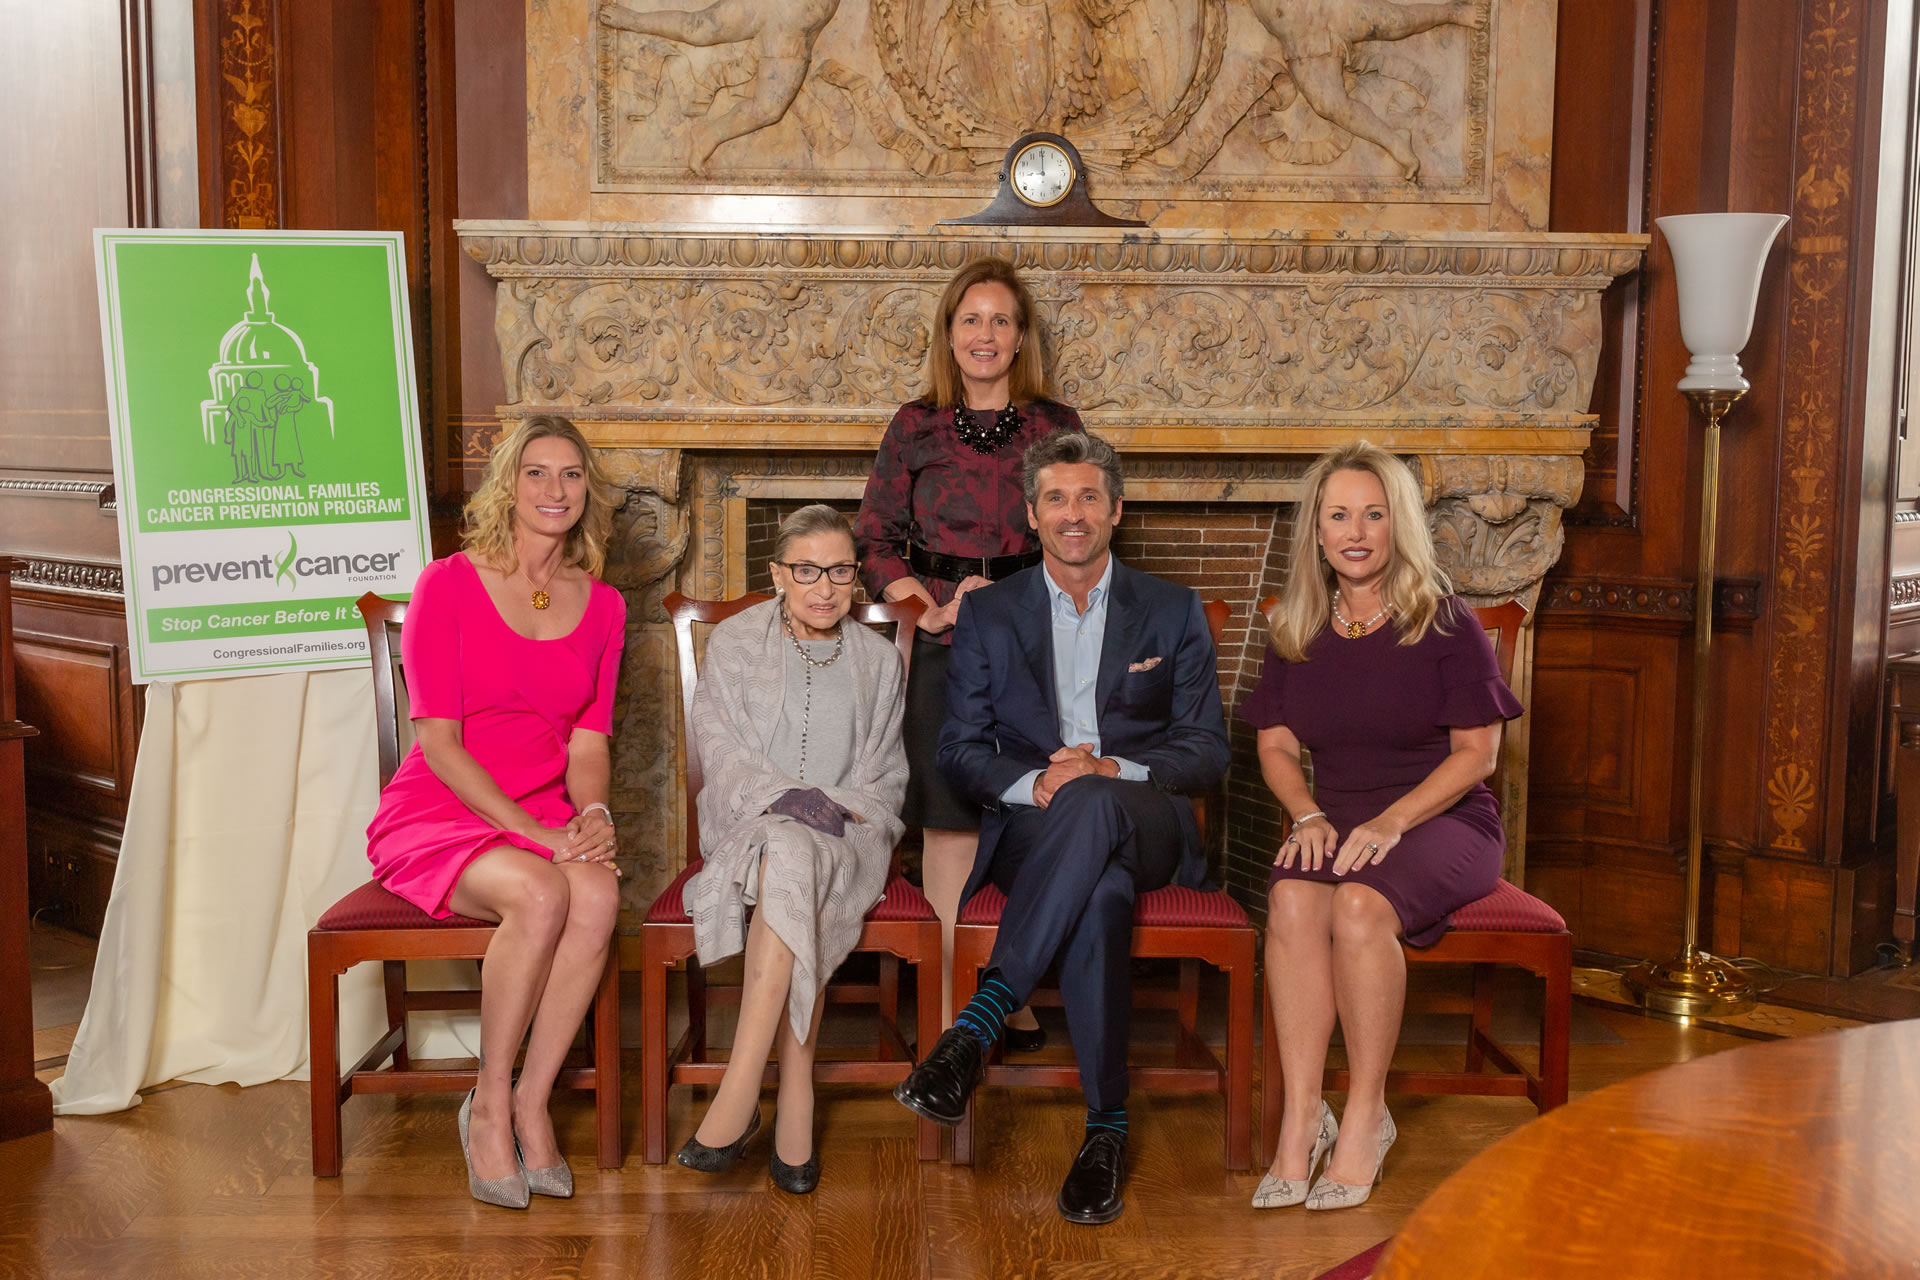 Action for Cancer Awareness Awards Luncheon 2019 - Congressional Families Cancer Prevention Program®